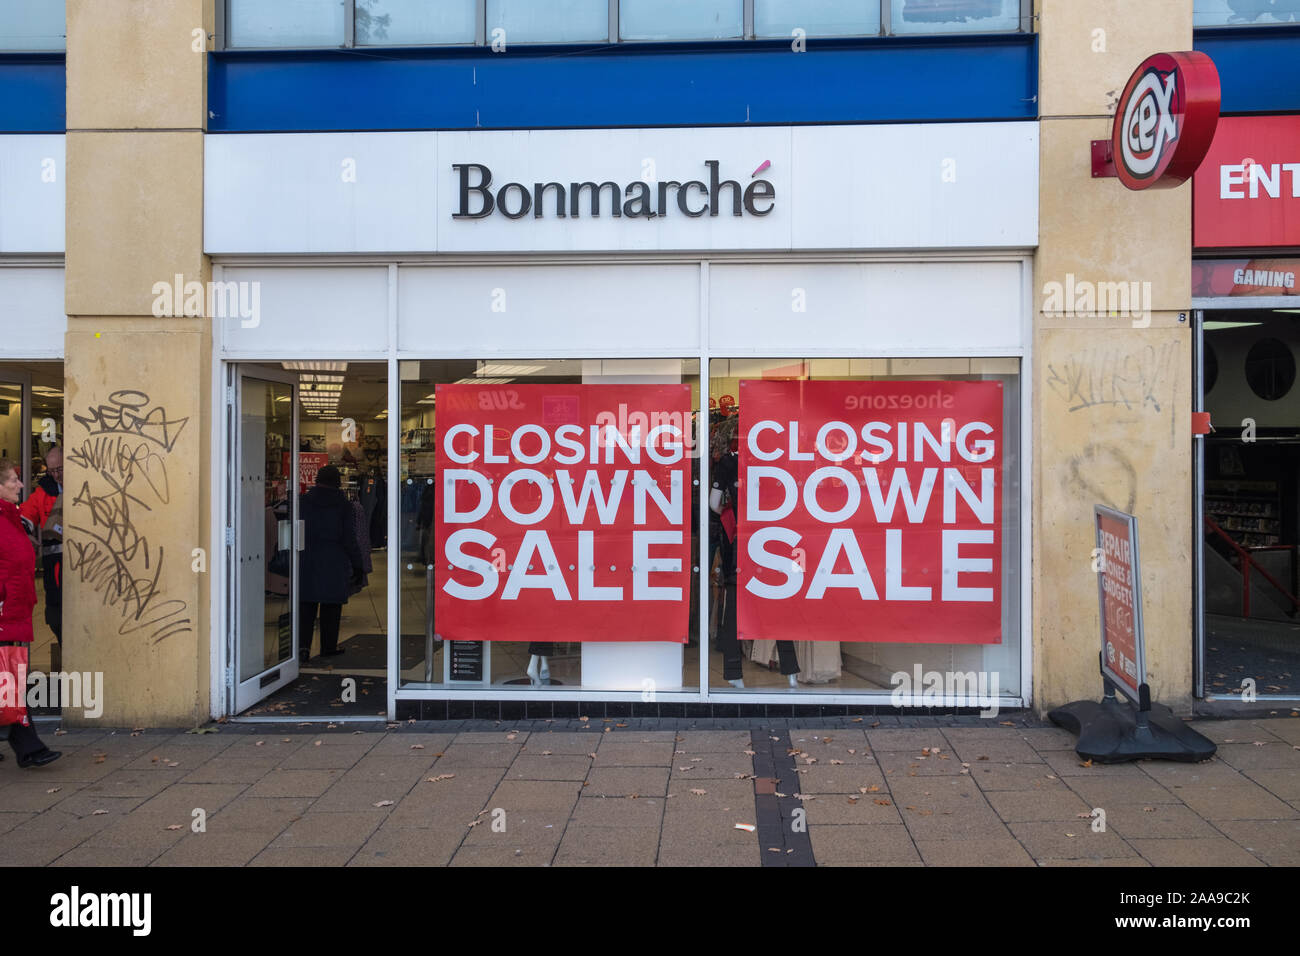 """Branch of discount clothing retailer Bonmarche with large """"closing down sale"""" posters in window.The company has gone into administration. Stock Photo"""